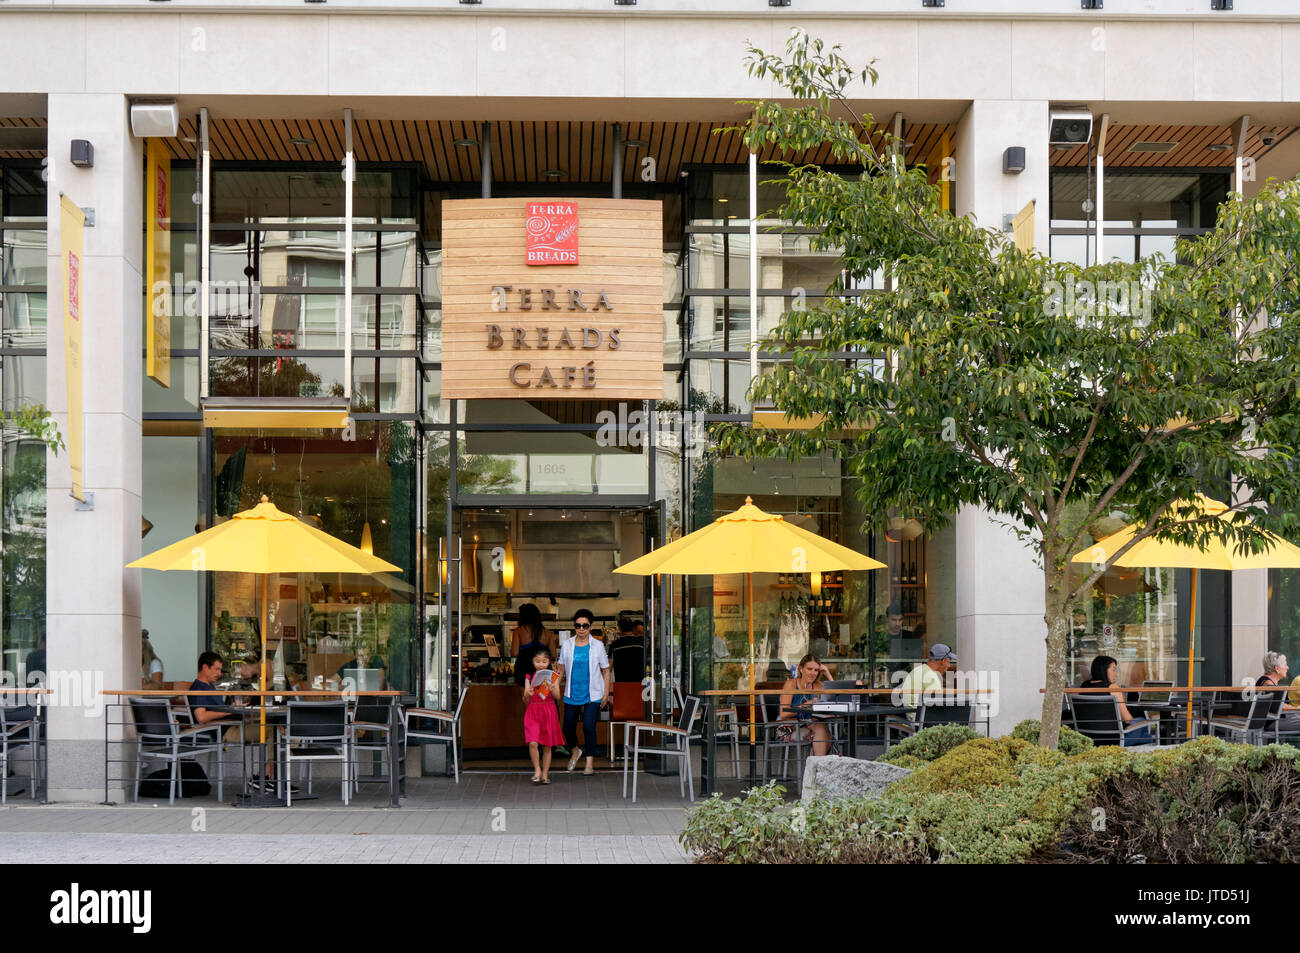 Terra Breads cafe and bakery in the Village on False Creek, Vancouver, BC, Canada - Stock Image